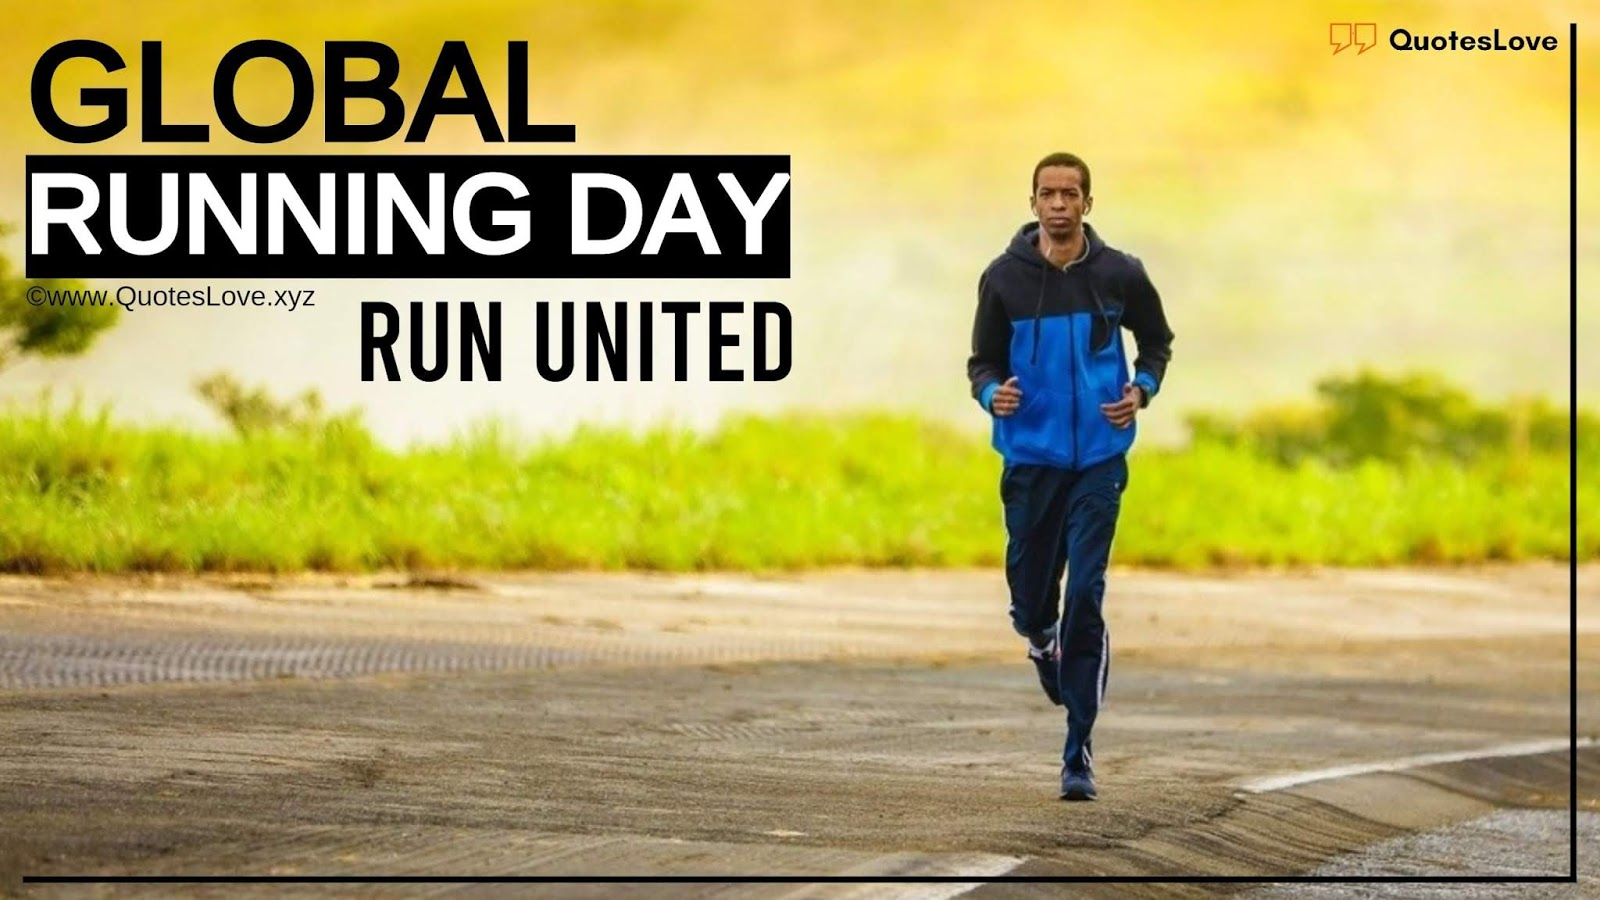 Global Running Day Quotes, Images & Pictures